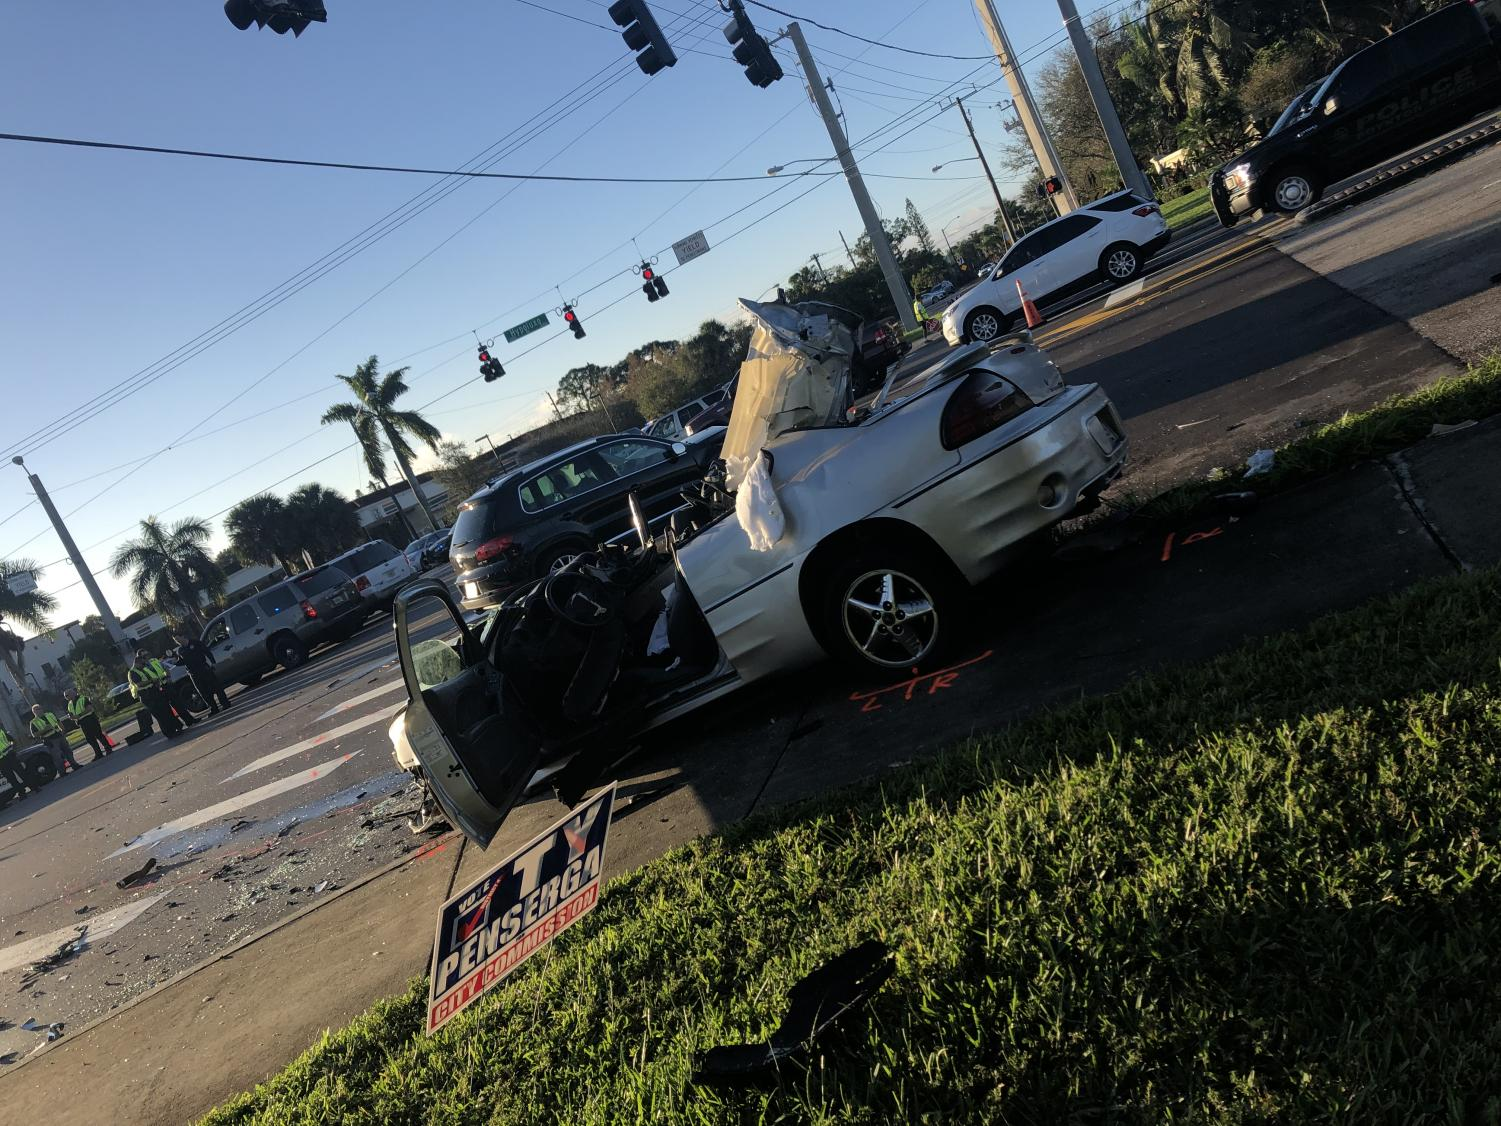 Silver car affected by the crash.